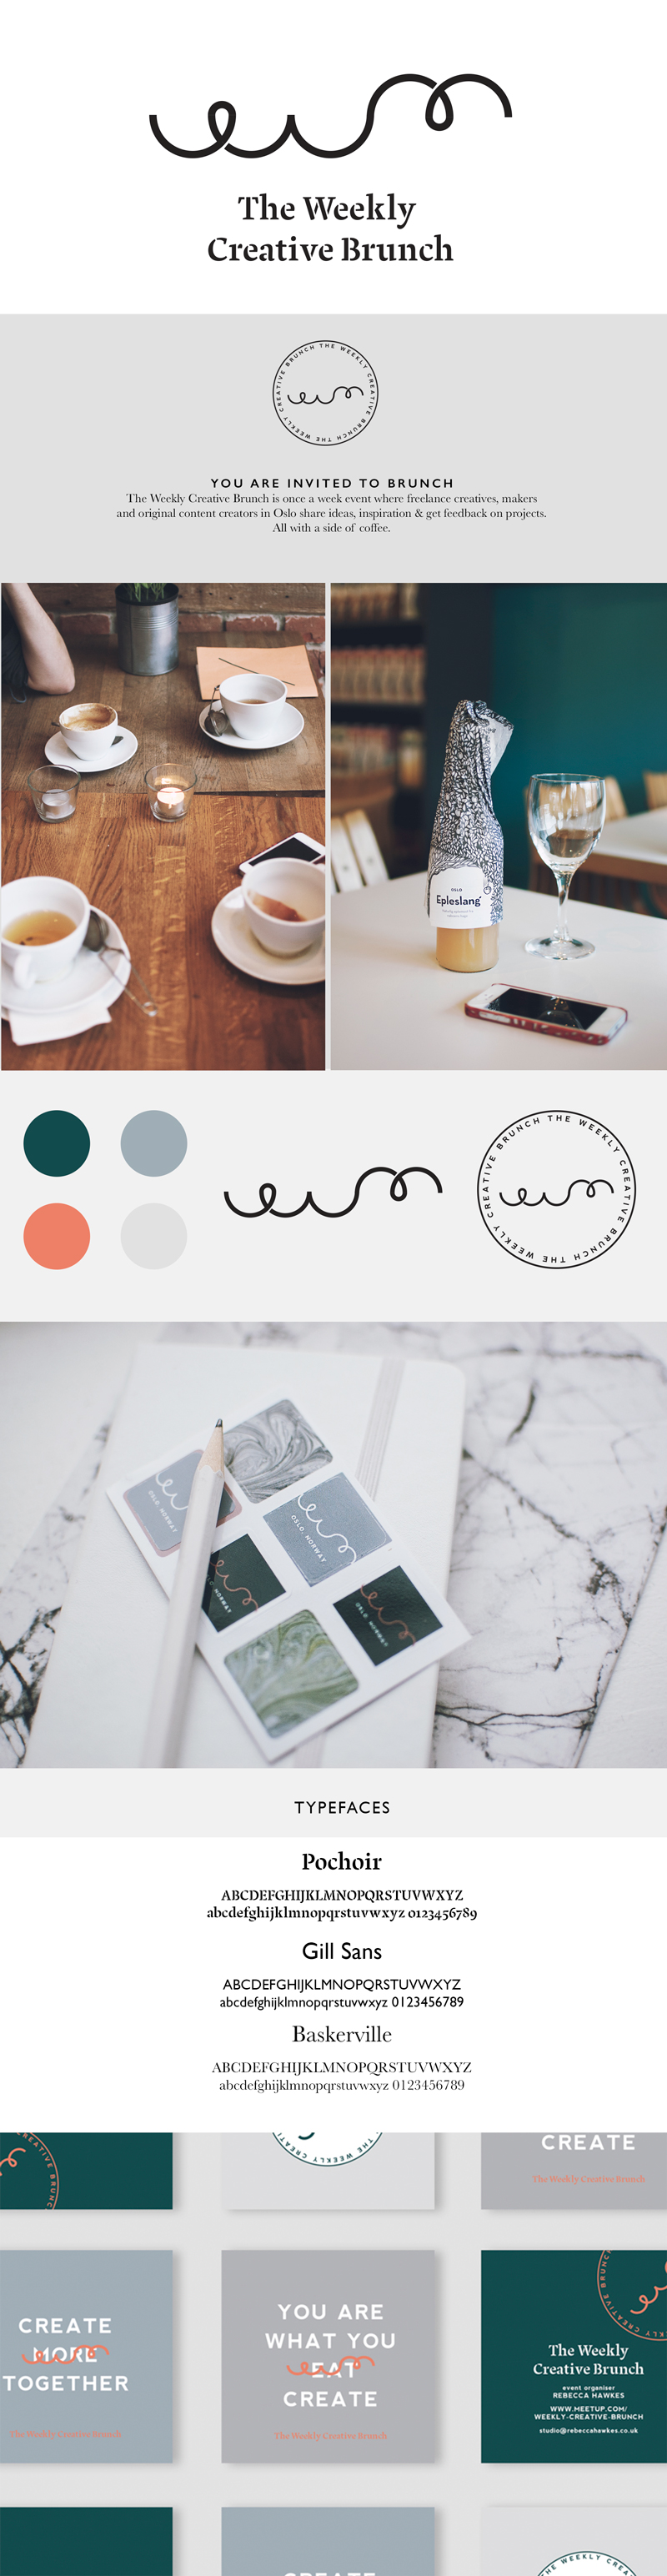 Introducing | The Weekly Creative Brunch | Branding Rebecca Hawkes